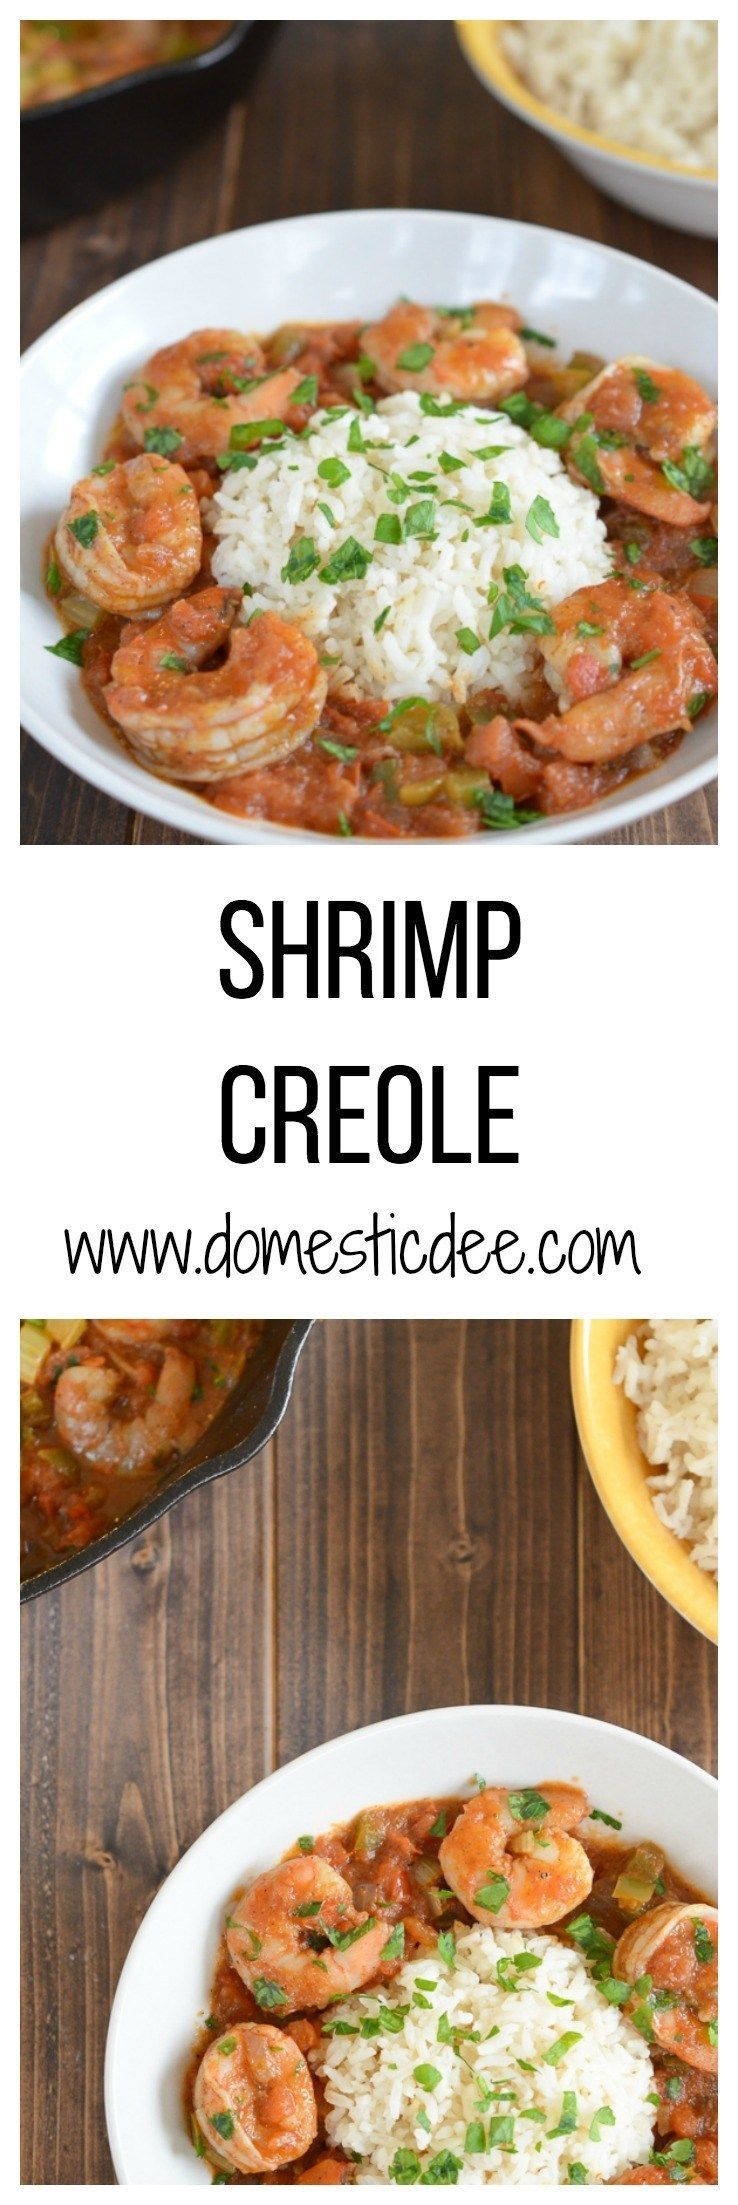 Shrimp Creole #cajunandcreolerecipes Easy Shrimp Creole Recipe- This easy shrimp creole recipe has jumbo shrimp, simmered in creole tomato sauce served over a steamy bed of rice. I www.domesticdee.com #cajunandcreolerecipes